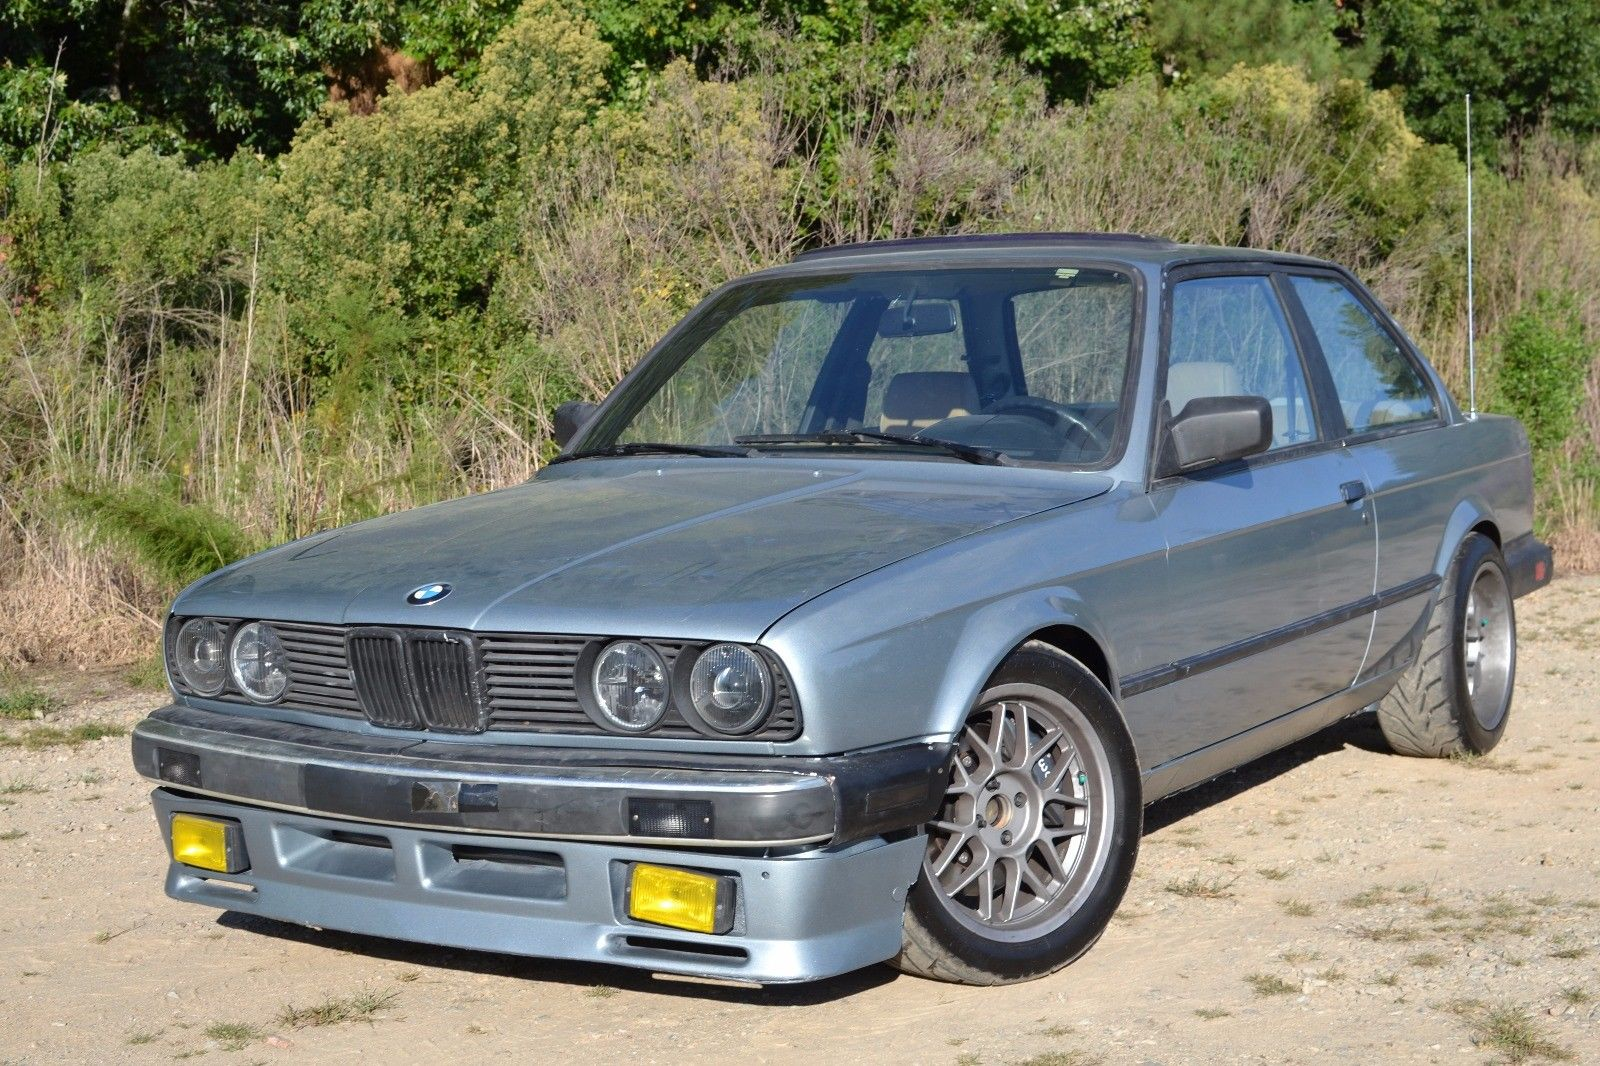 for sale bmw e30 with a ls1 v8 engine swap depot. Black Bedroom Furniture Sets. Home Design Ideas